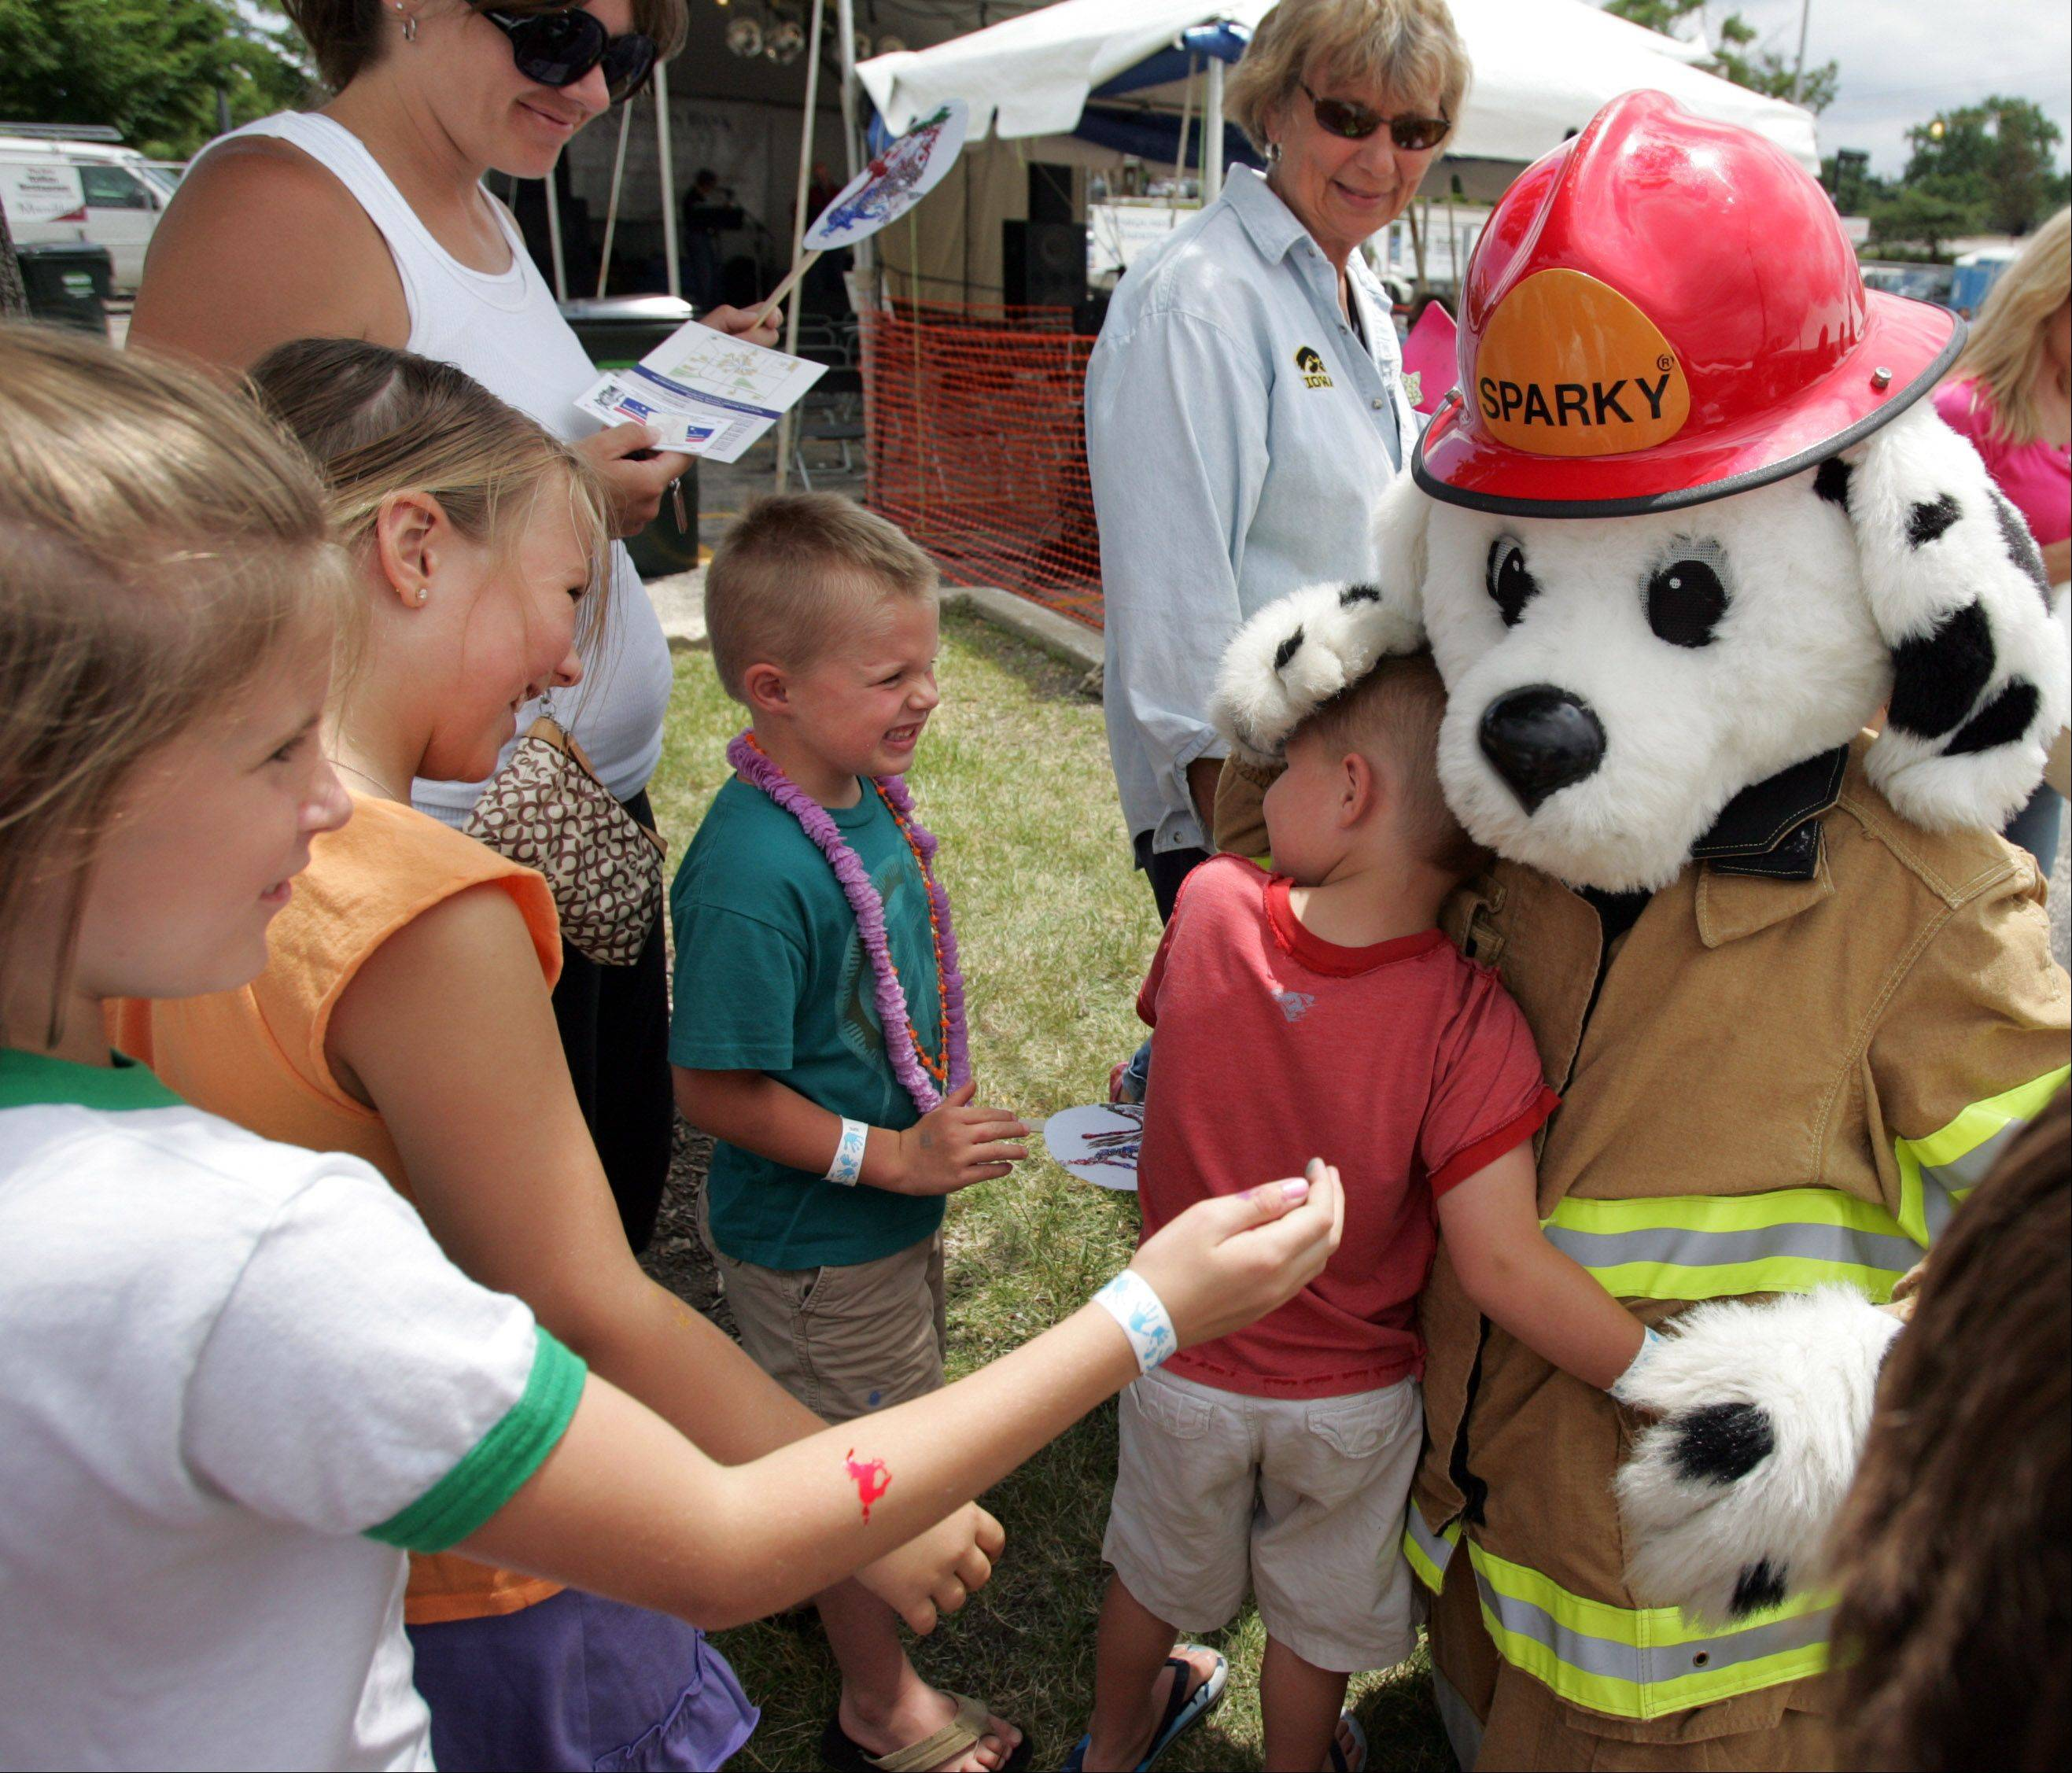 Sparky, the Barrington Fire Department safety dog, is a popular figure at the 4th of July celebration.